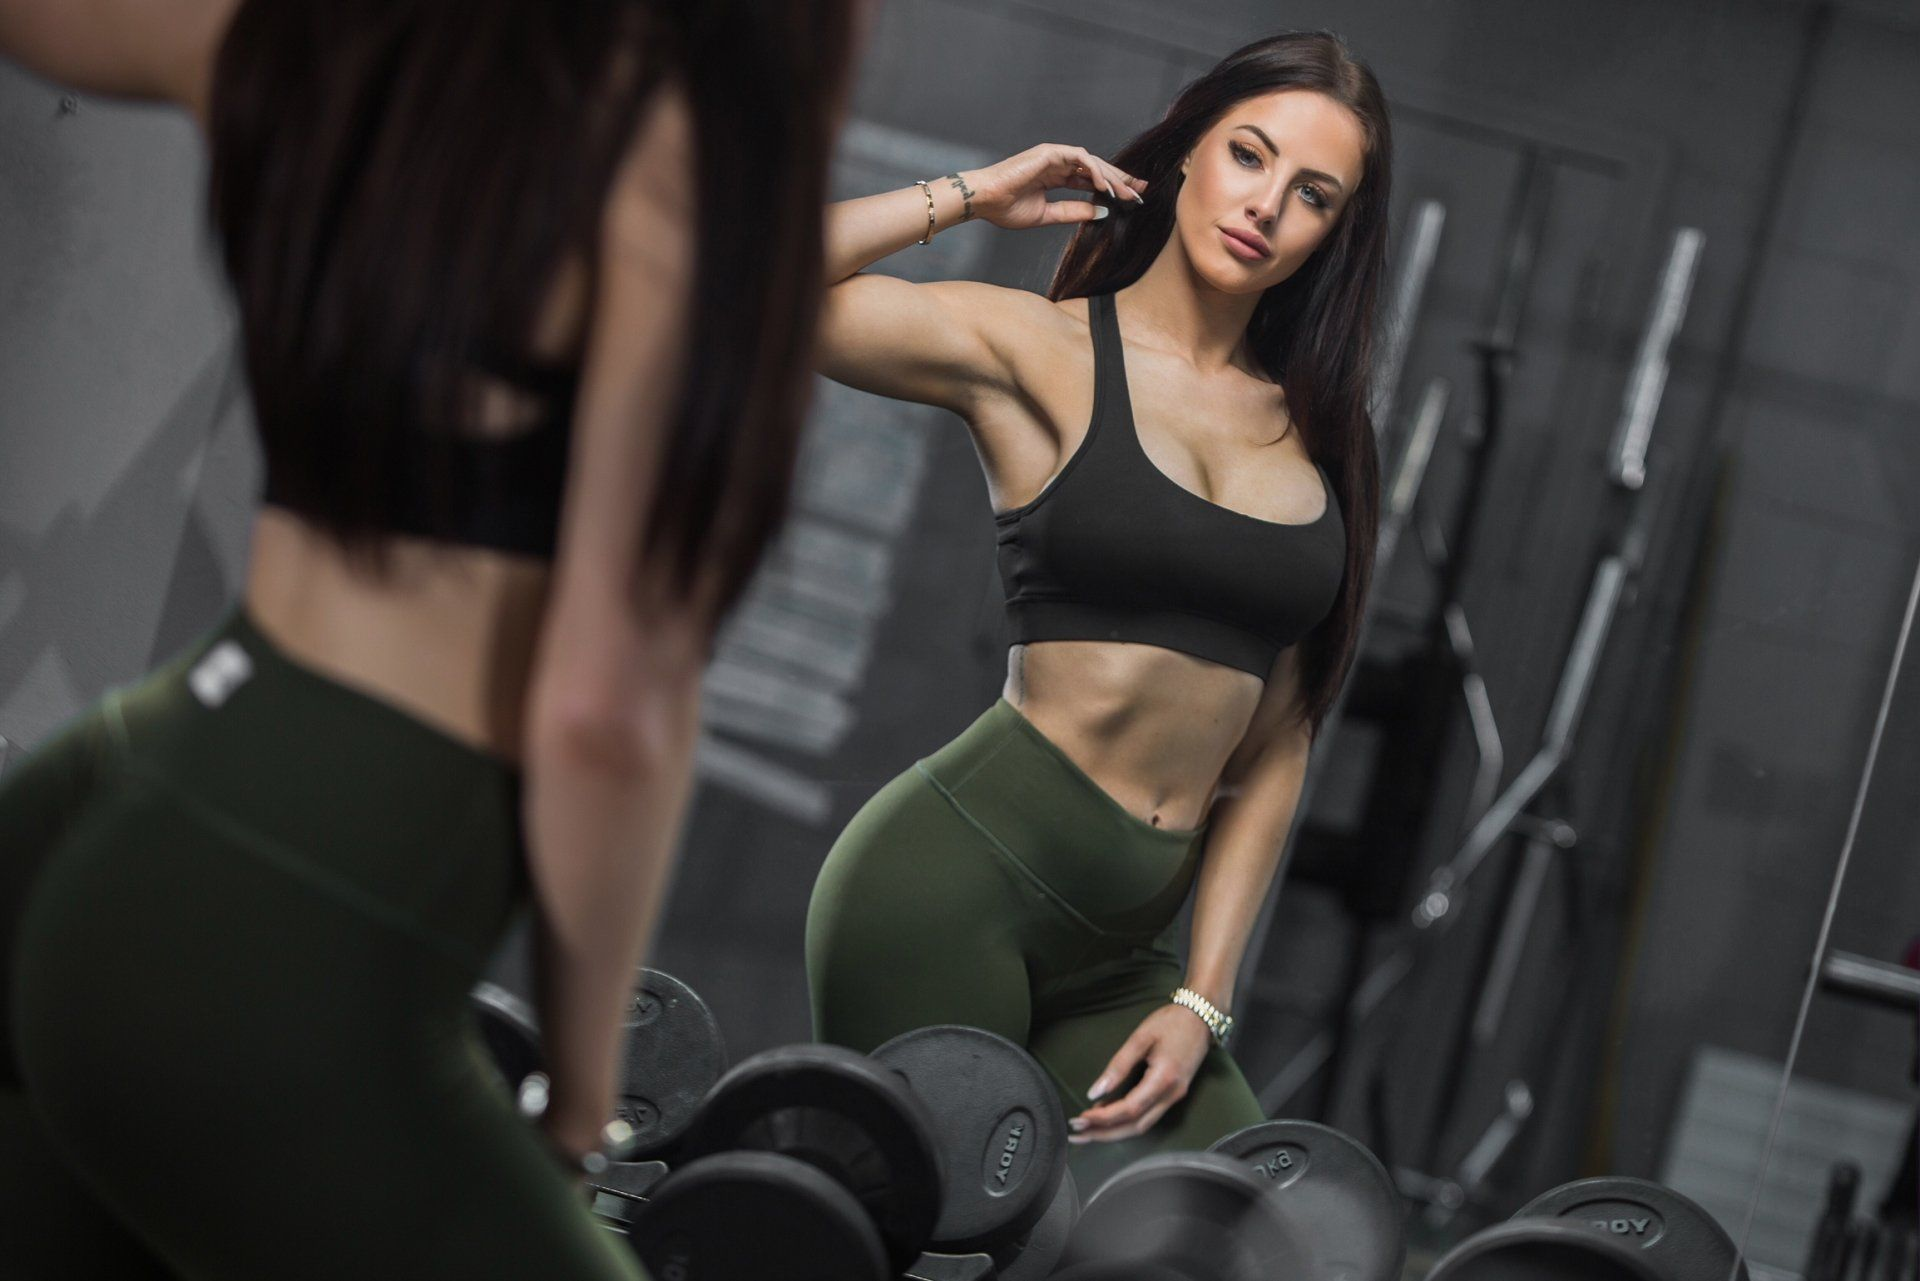 Gym Girl Wallpapers Top Free Gym Girl Backgrounds